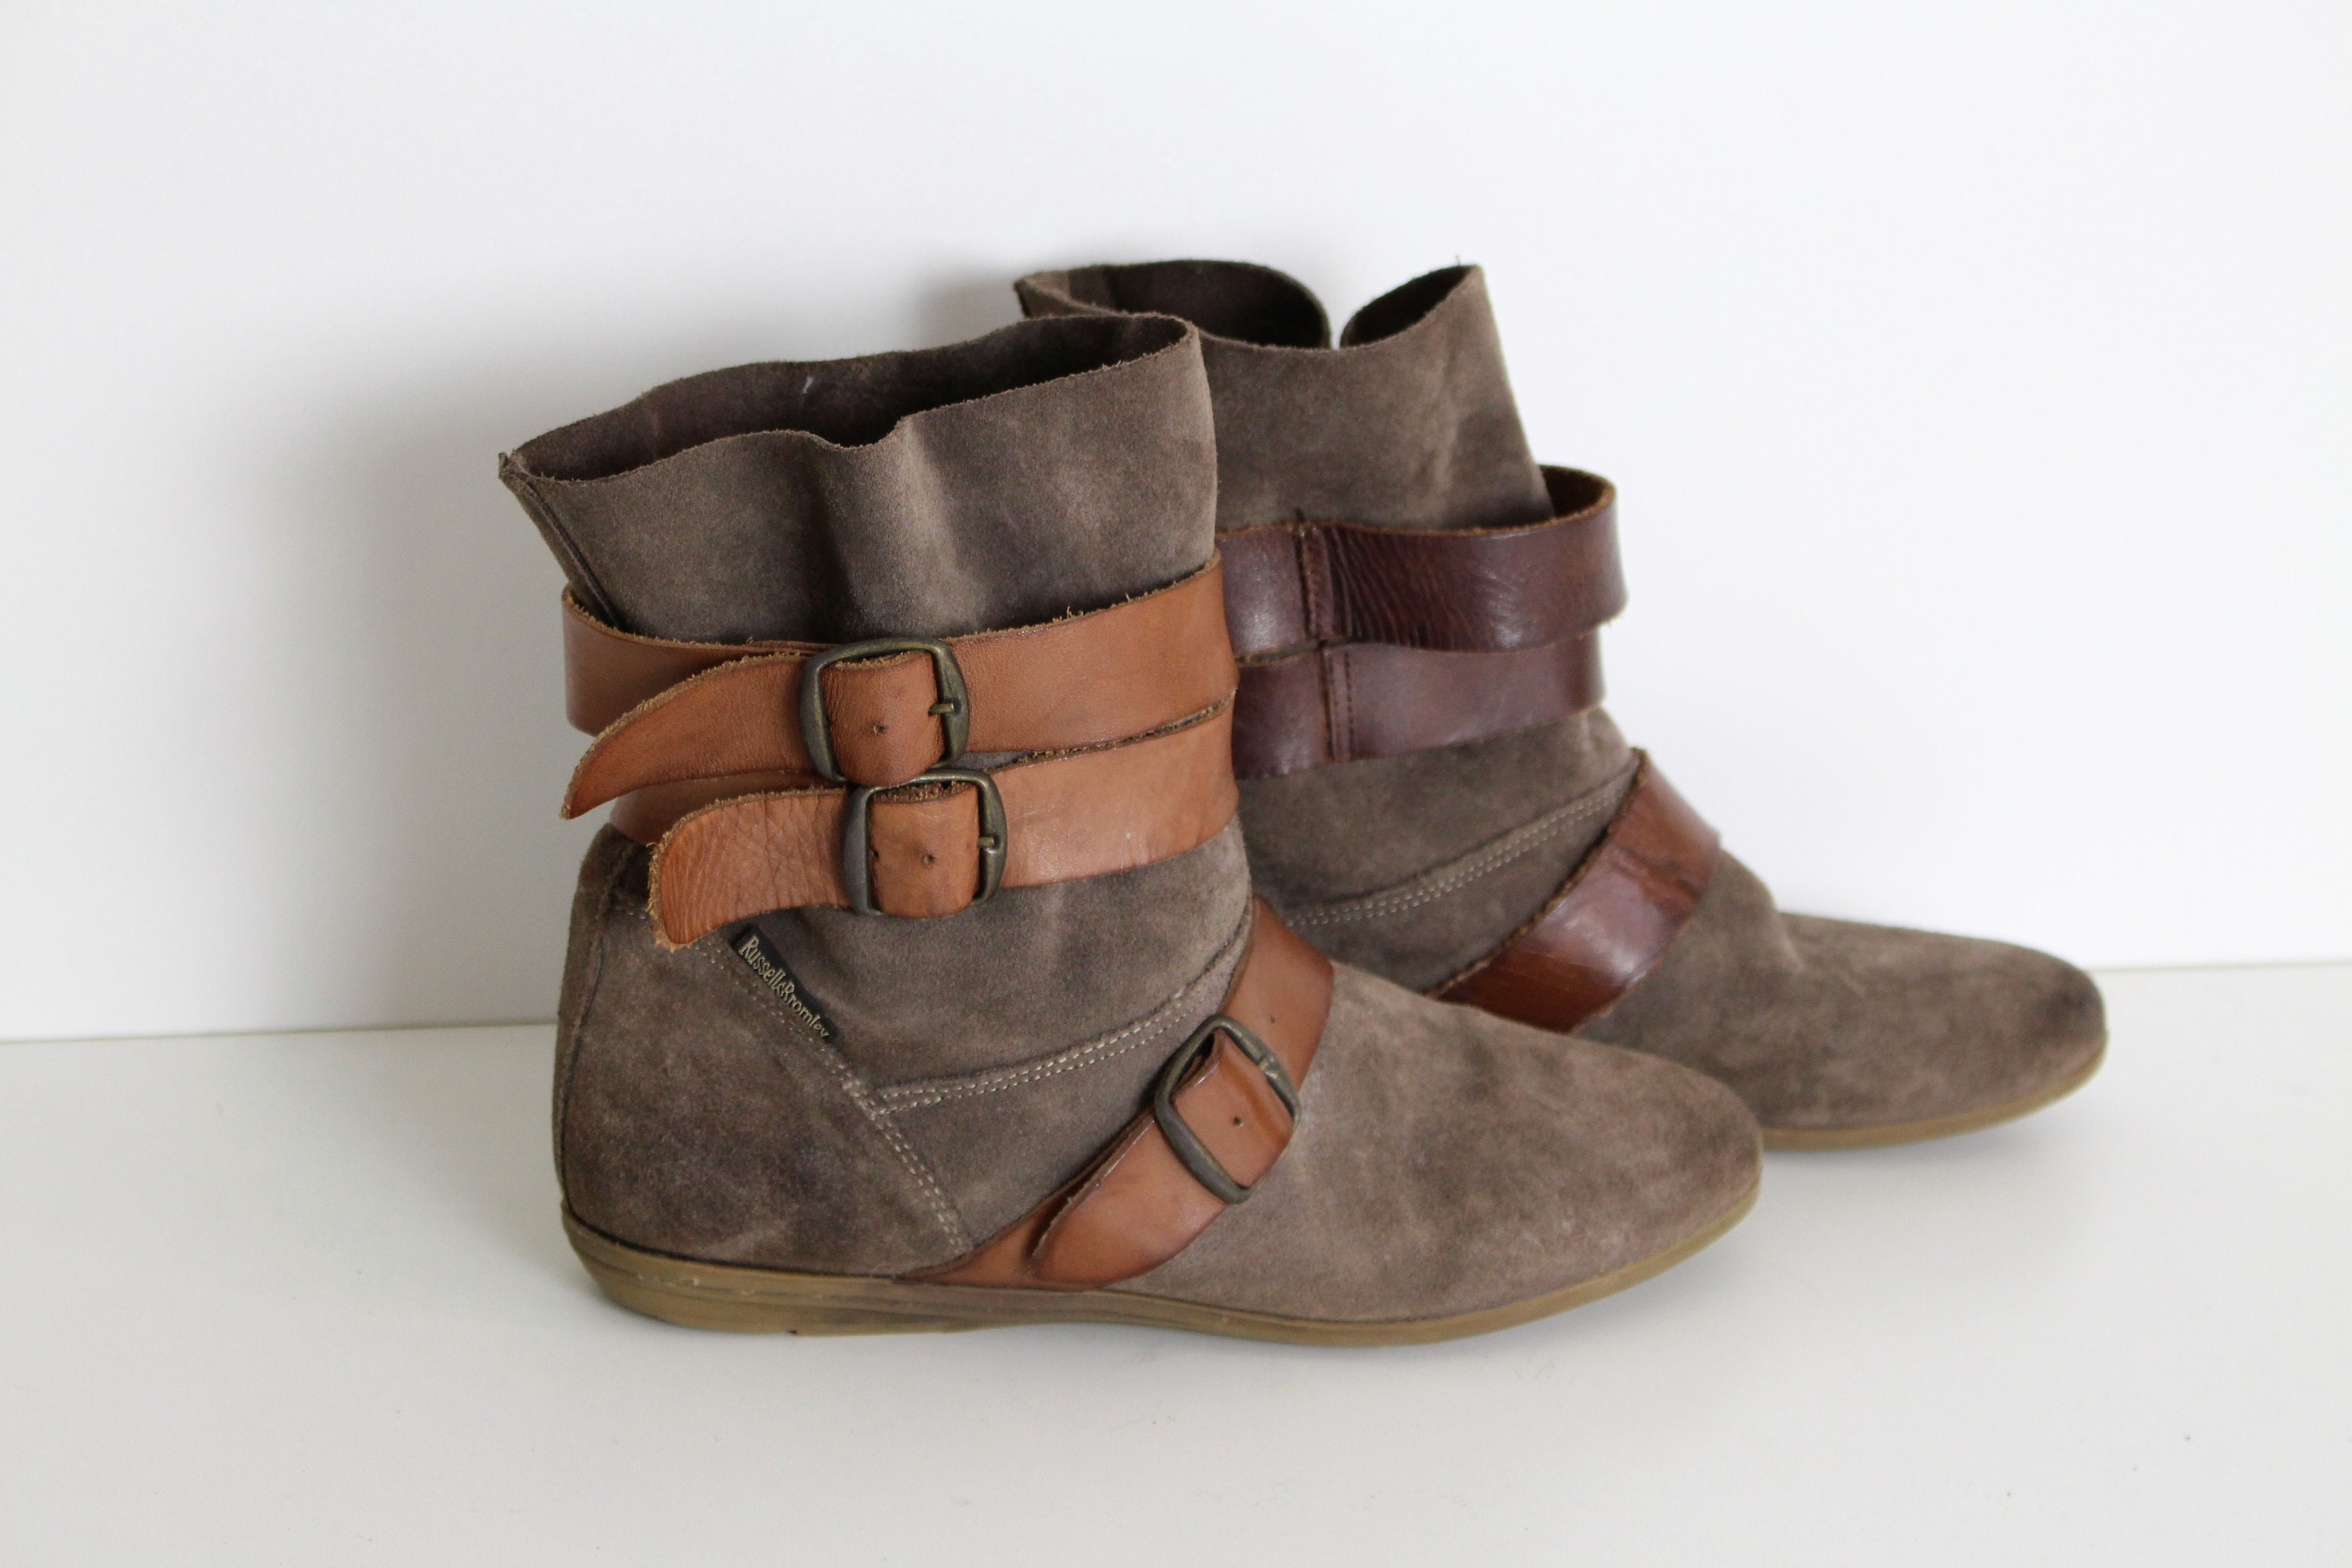 4ff8ec41518 Brown Suede Ankle Boots RUSSELL BROMLEY Criss-cross Strap Boots Womens  Western Brown Flat Suede Festival Boots 38 (Eur) 7 - 7.5 (US )